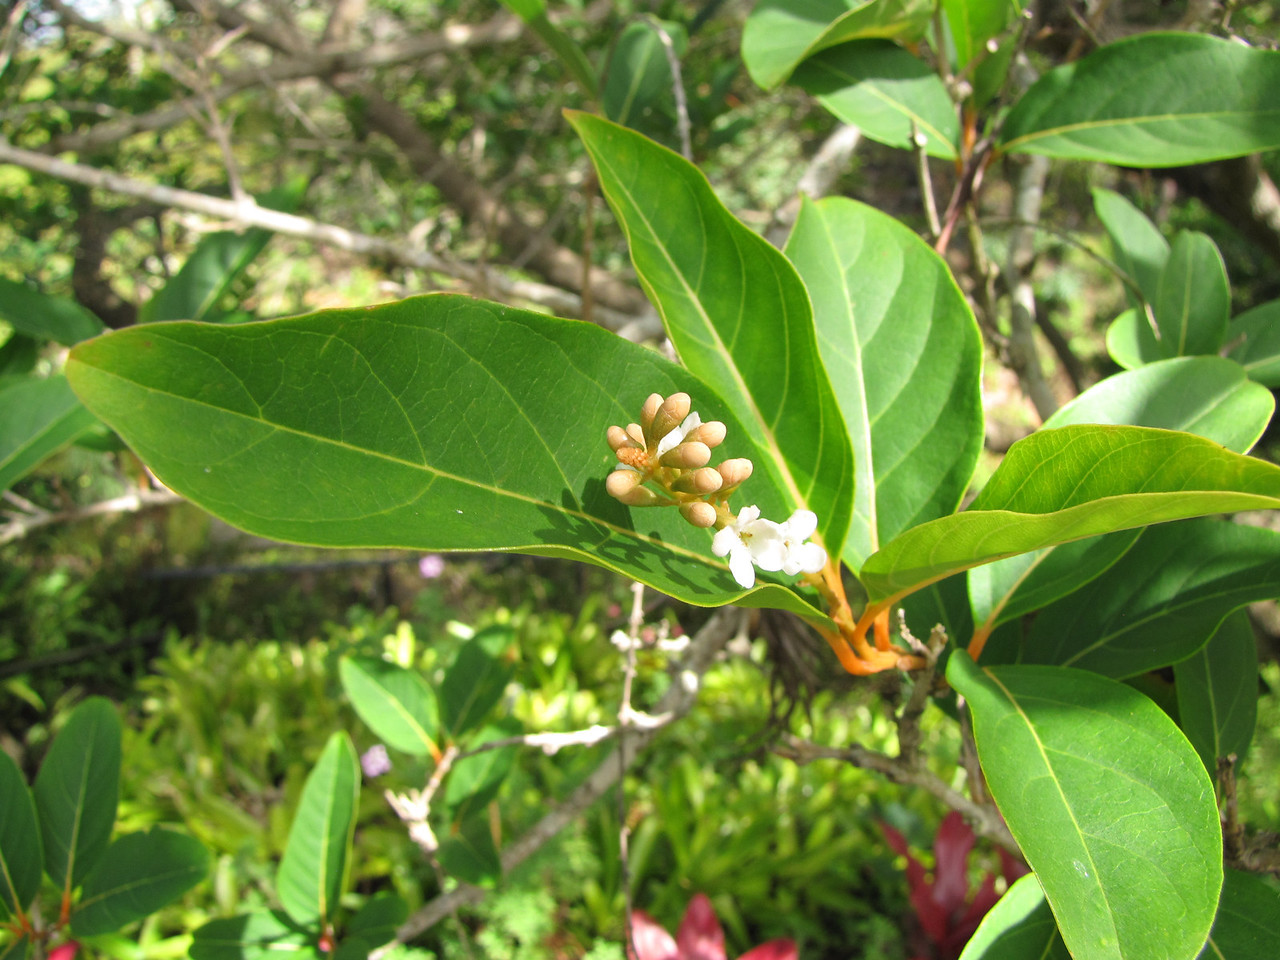 Citharexylum spinosum (Verbenaceae) flowers and leaves at Kula Botanical Garden, Maui (Hawaii) (March 07, 2011).PhotoID=starr-110307-1944Photo by Forest and Kim Starr.  If you'd like to use this image, please see their image use policy.More images of this species by these photographers can be found here: search for more Starr images on HEAR.org